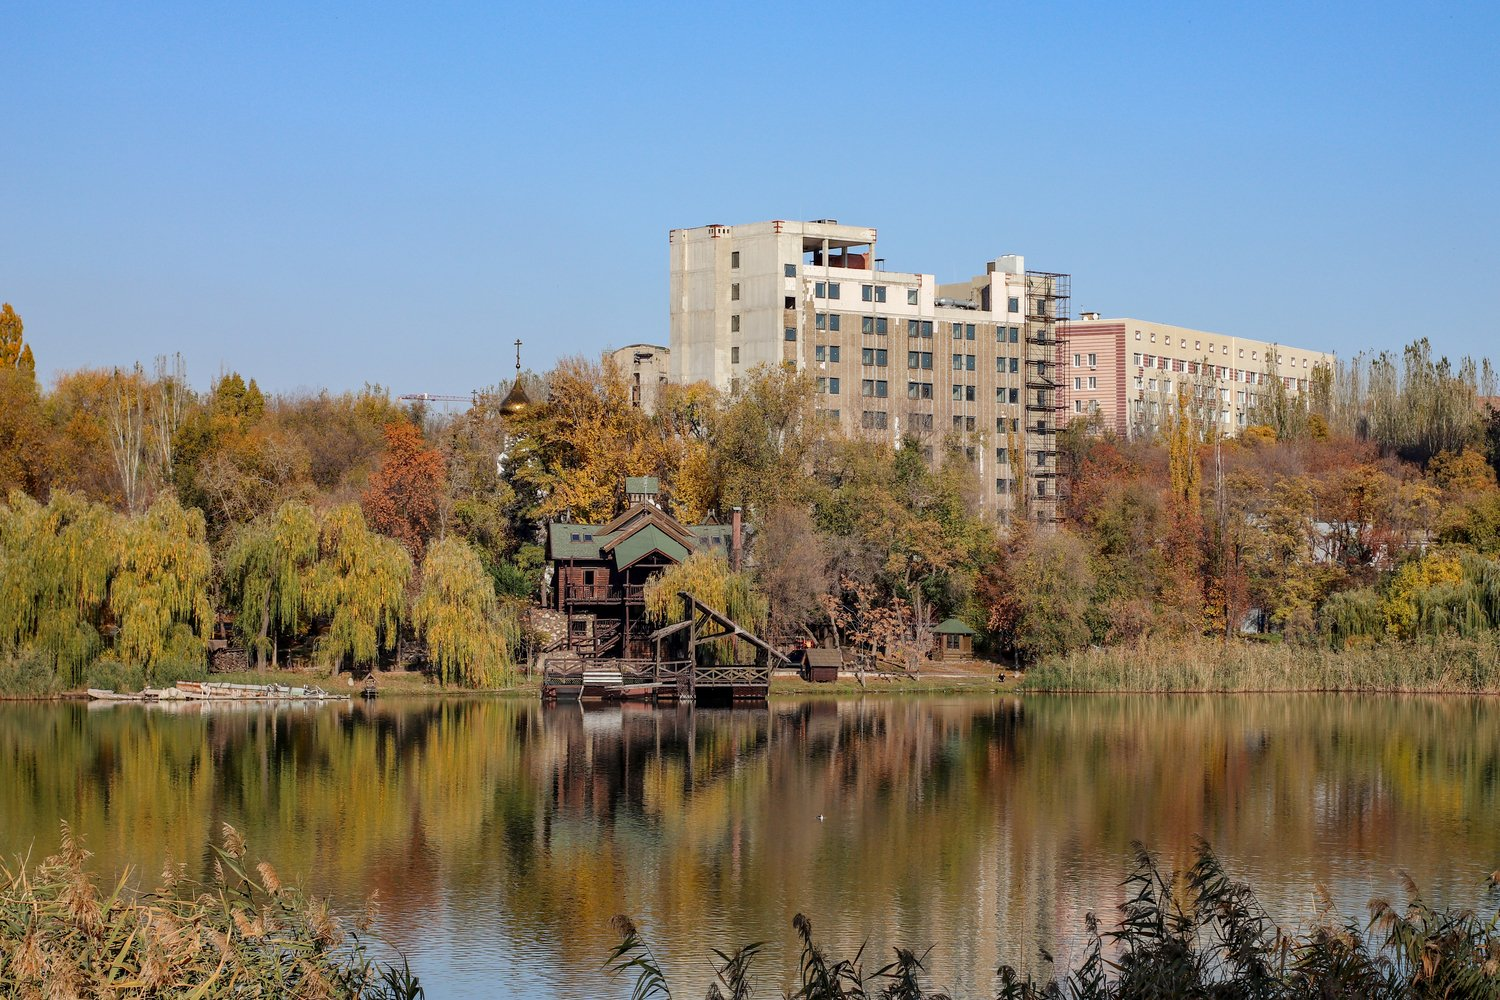 urban landscape view of the building and the forest example image 1